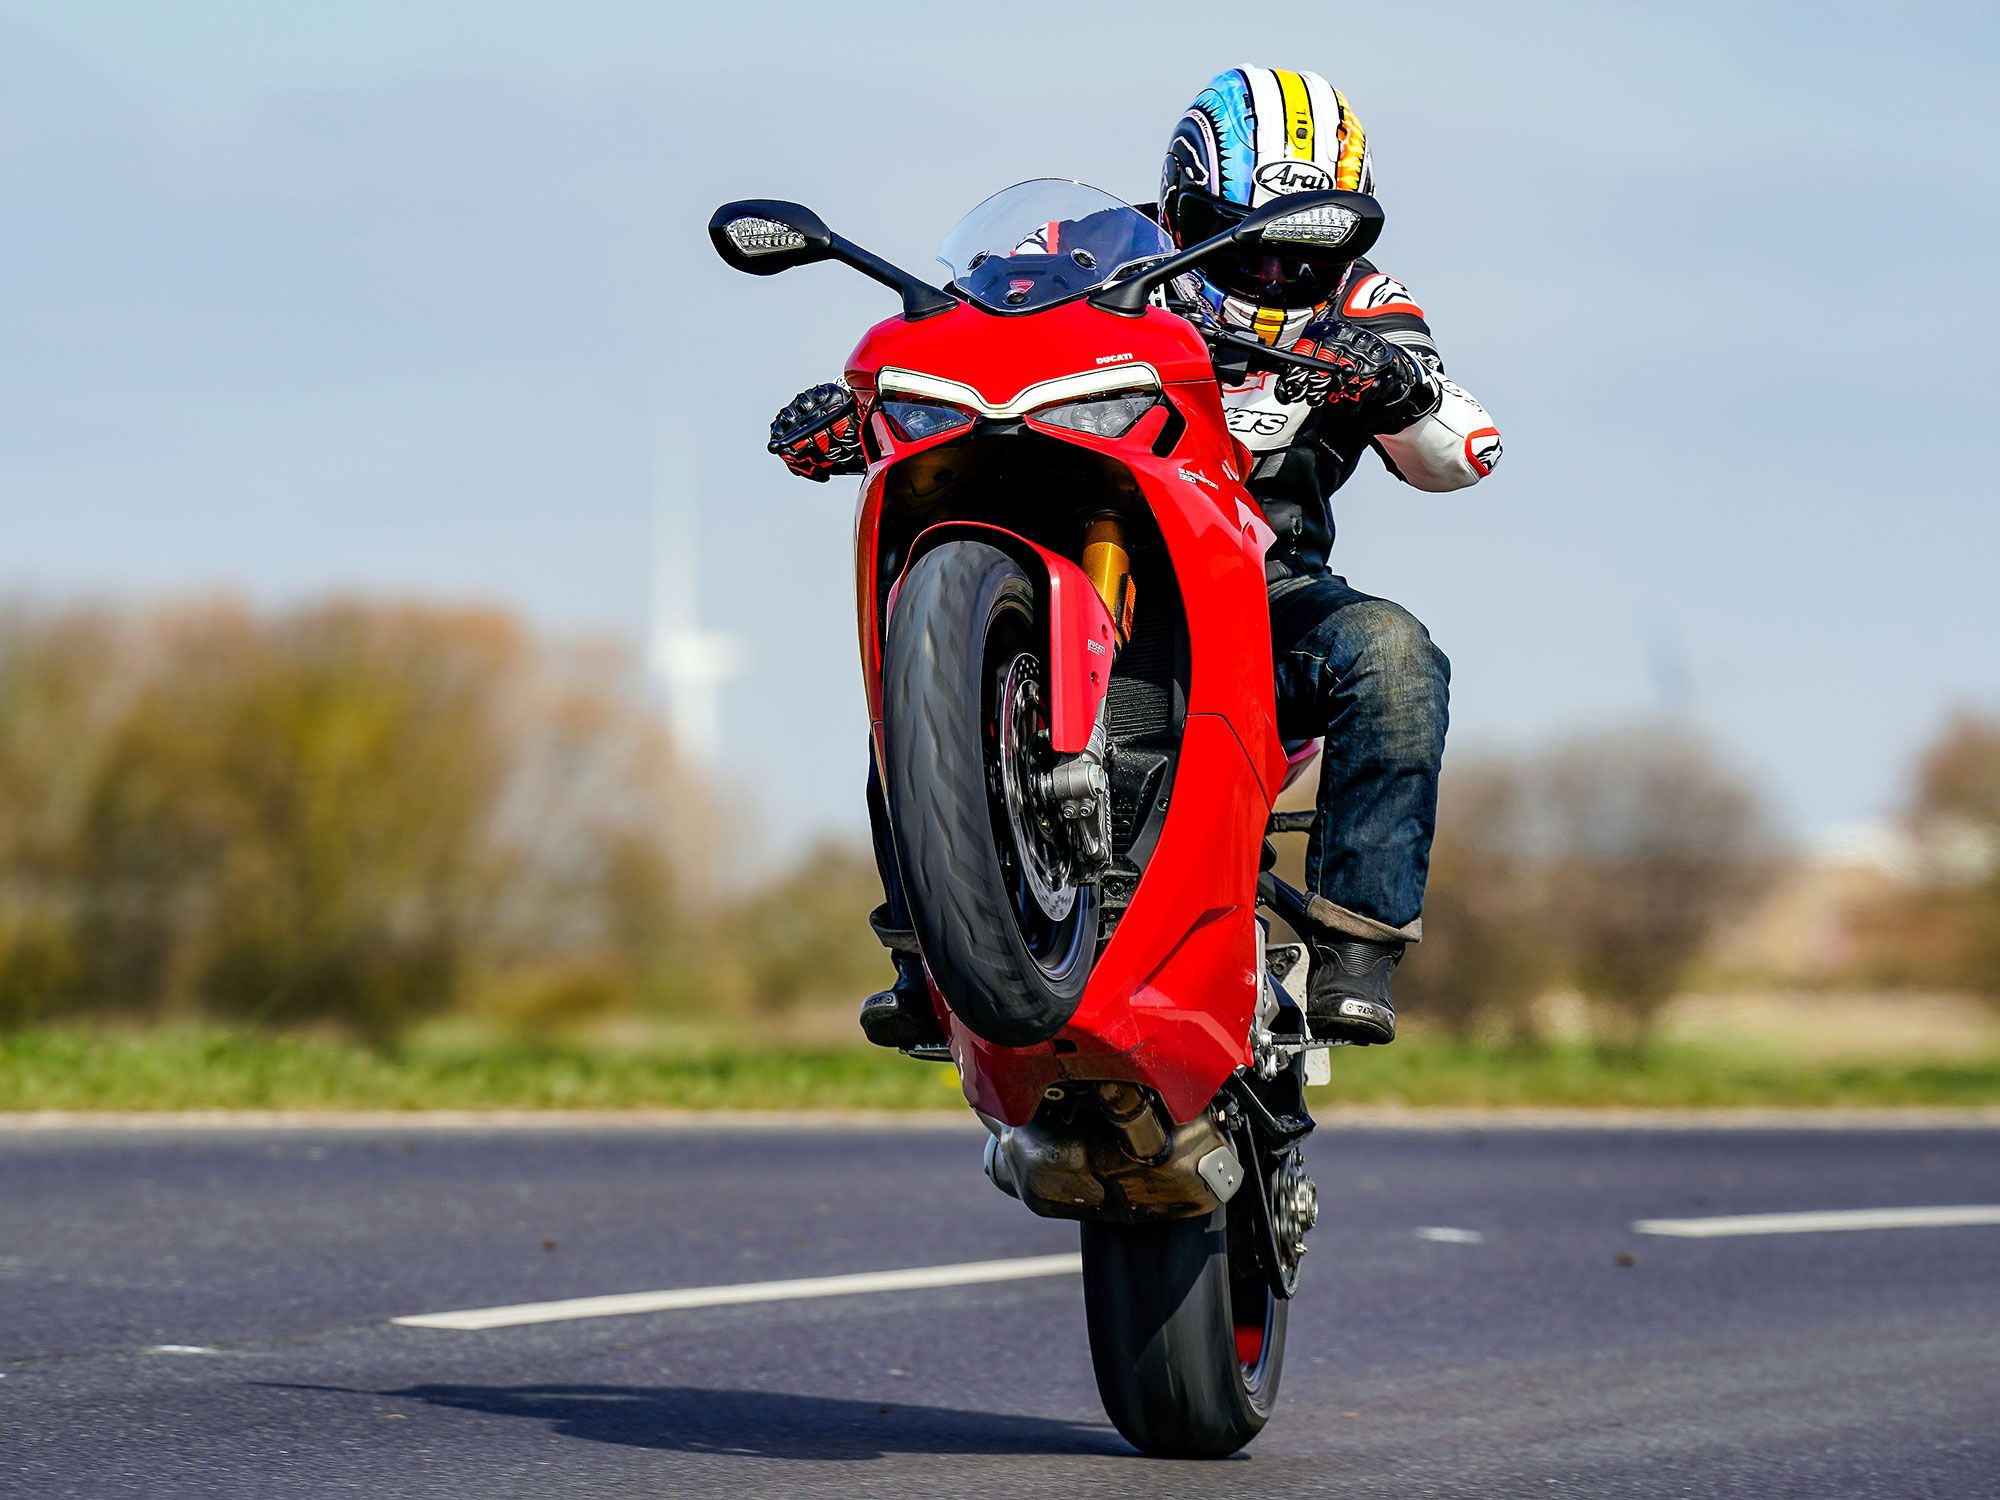 Ducati revised the exhaust and fueling to ensure the new 2021 model achieved Euro 5 standard, which wasn't the hardest job in the world as the engine is shared with the Hypermotard 950 and Multistrada 950, models that are already Euro 5 compliant.